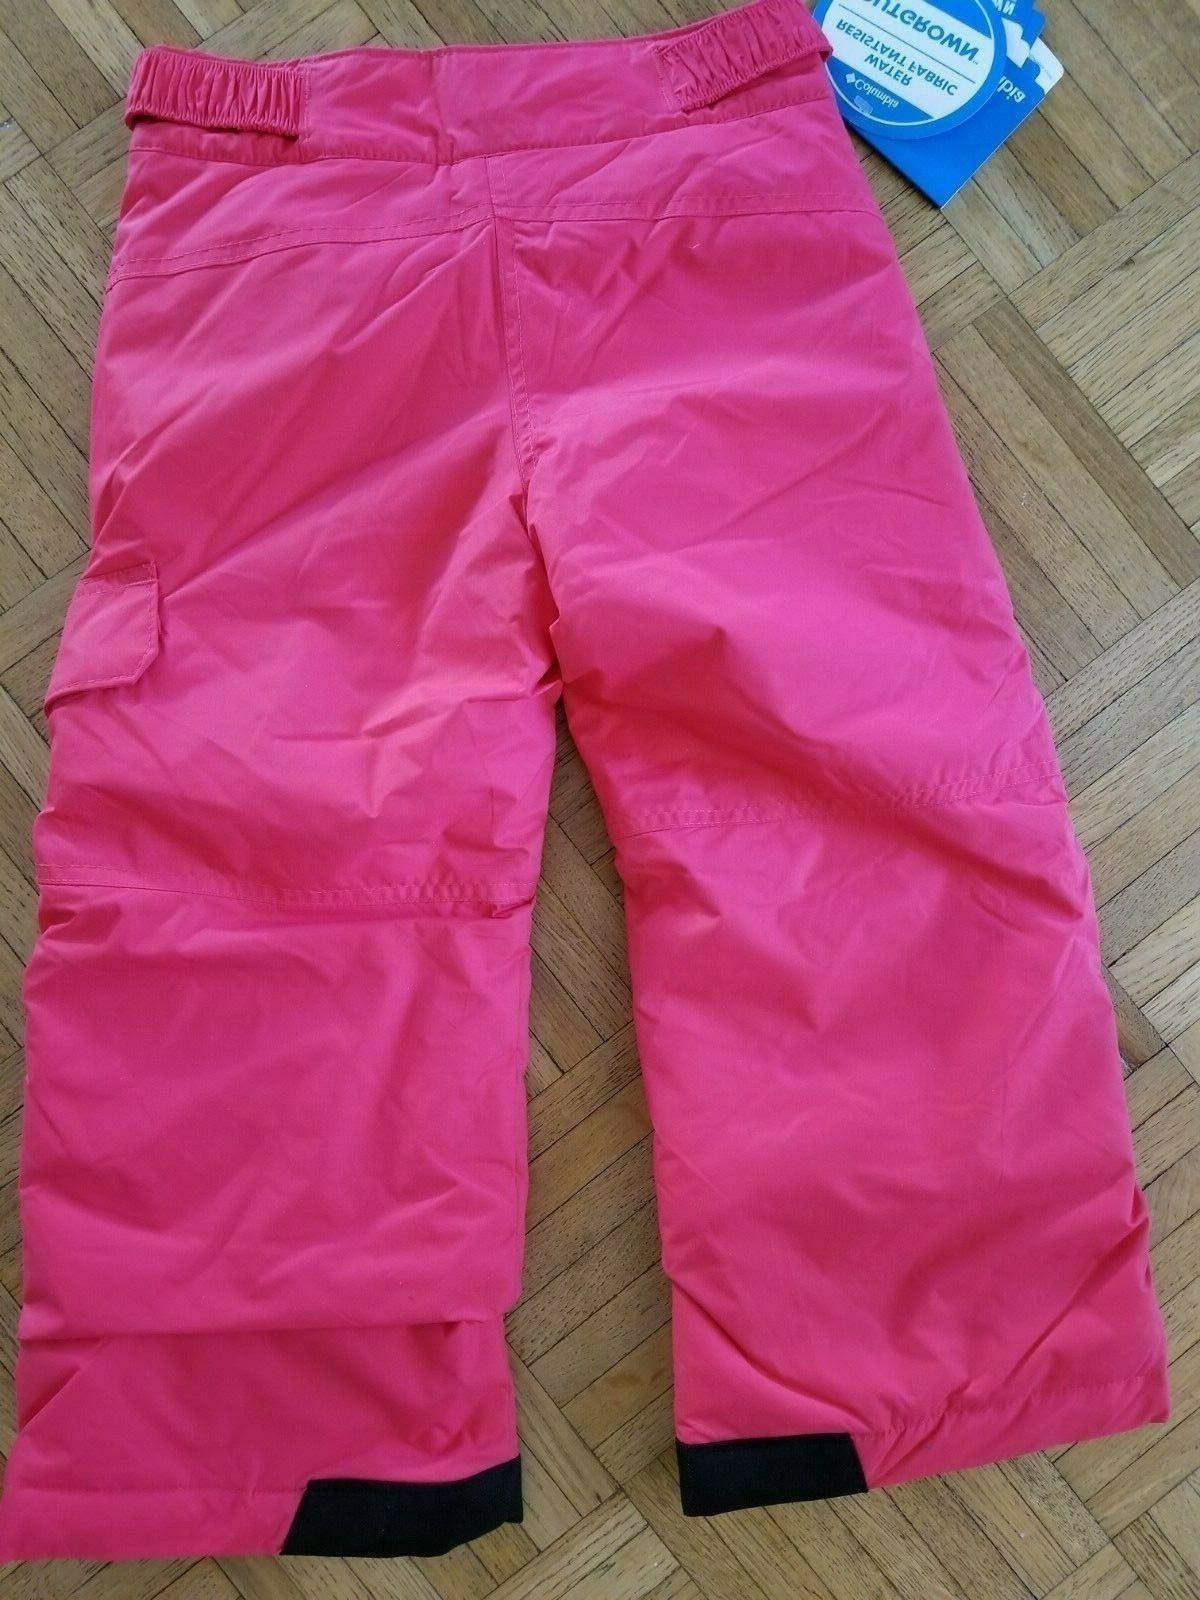 COLUMBIA Youth Now Talk Later Snow/Ski Pants NWT XS Pink